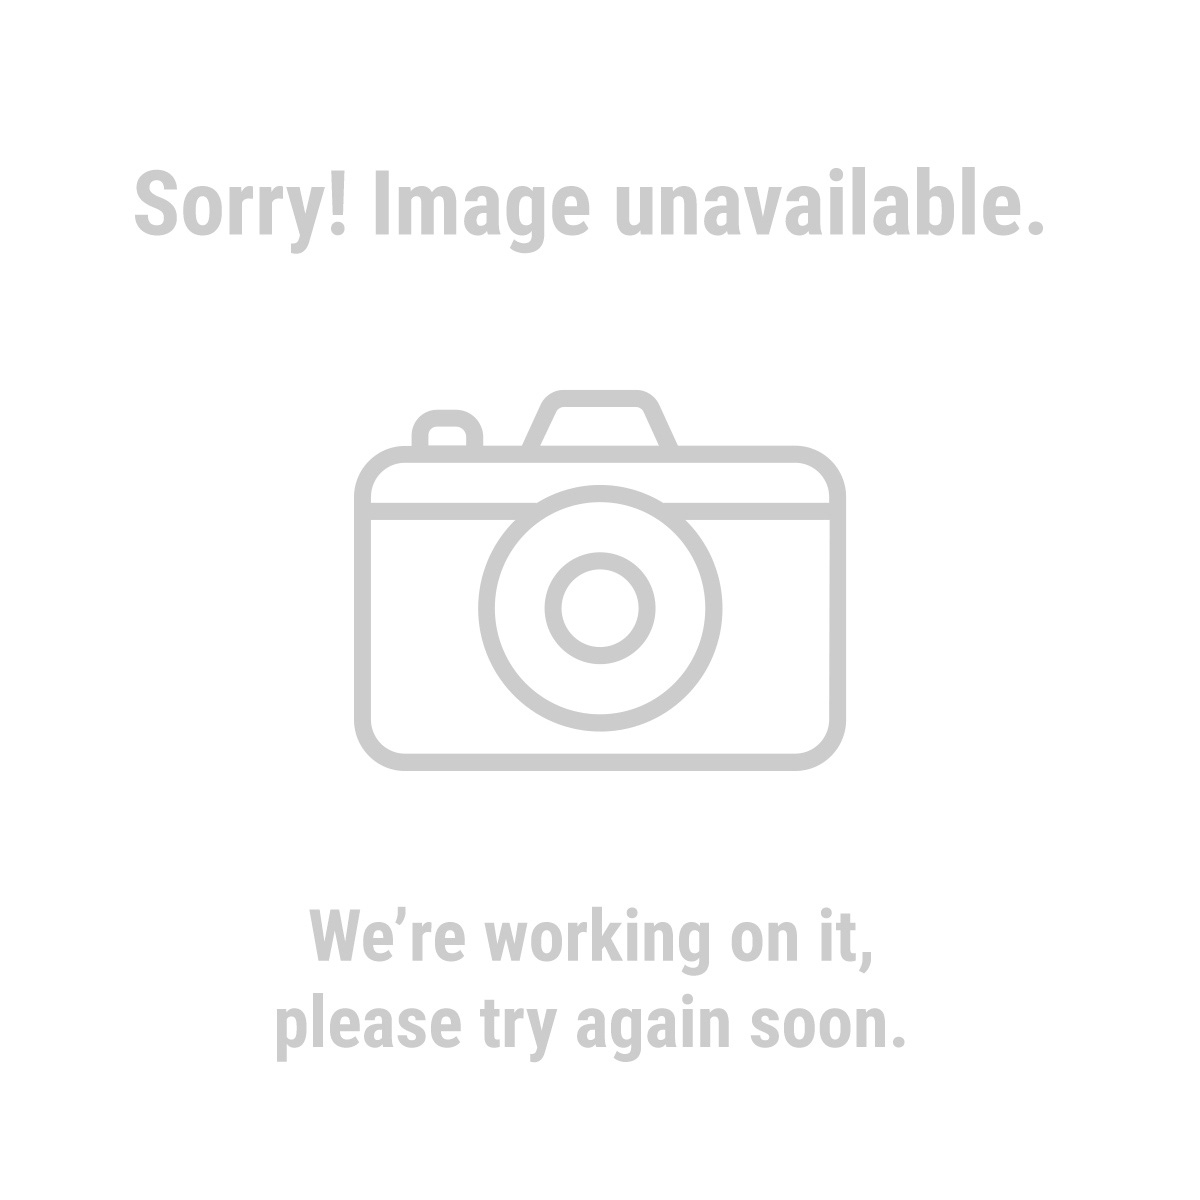 drill press extension table plans